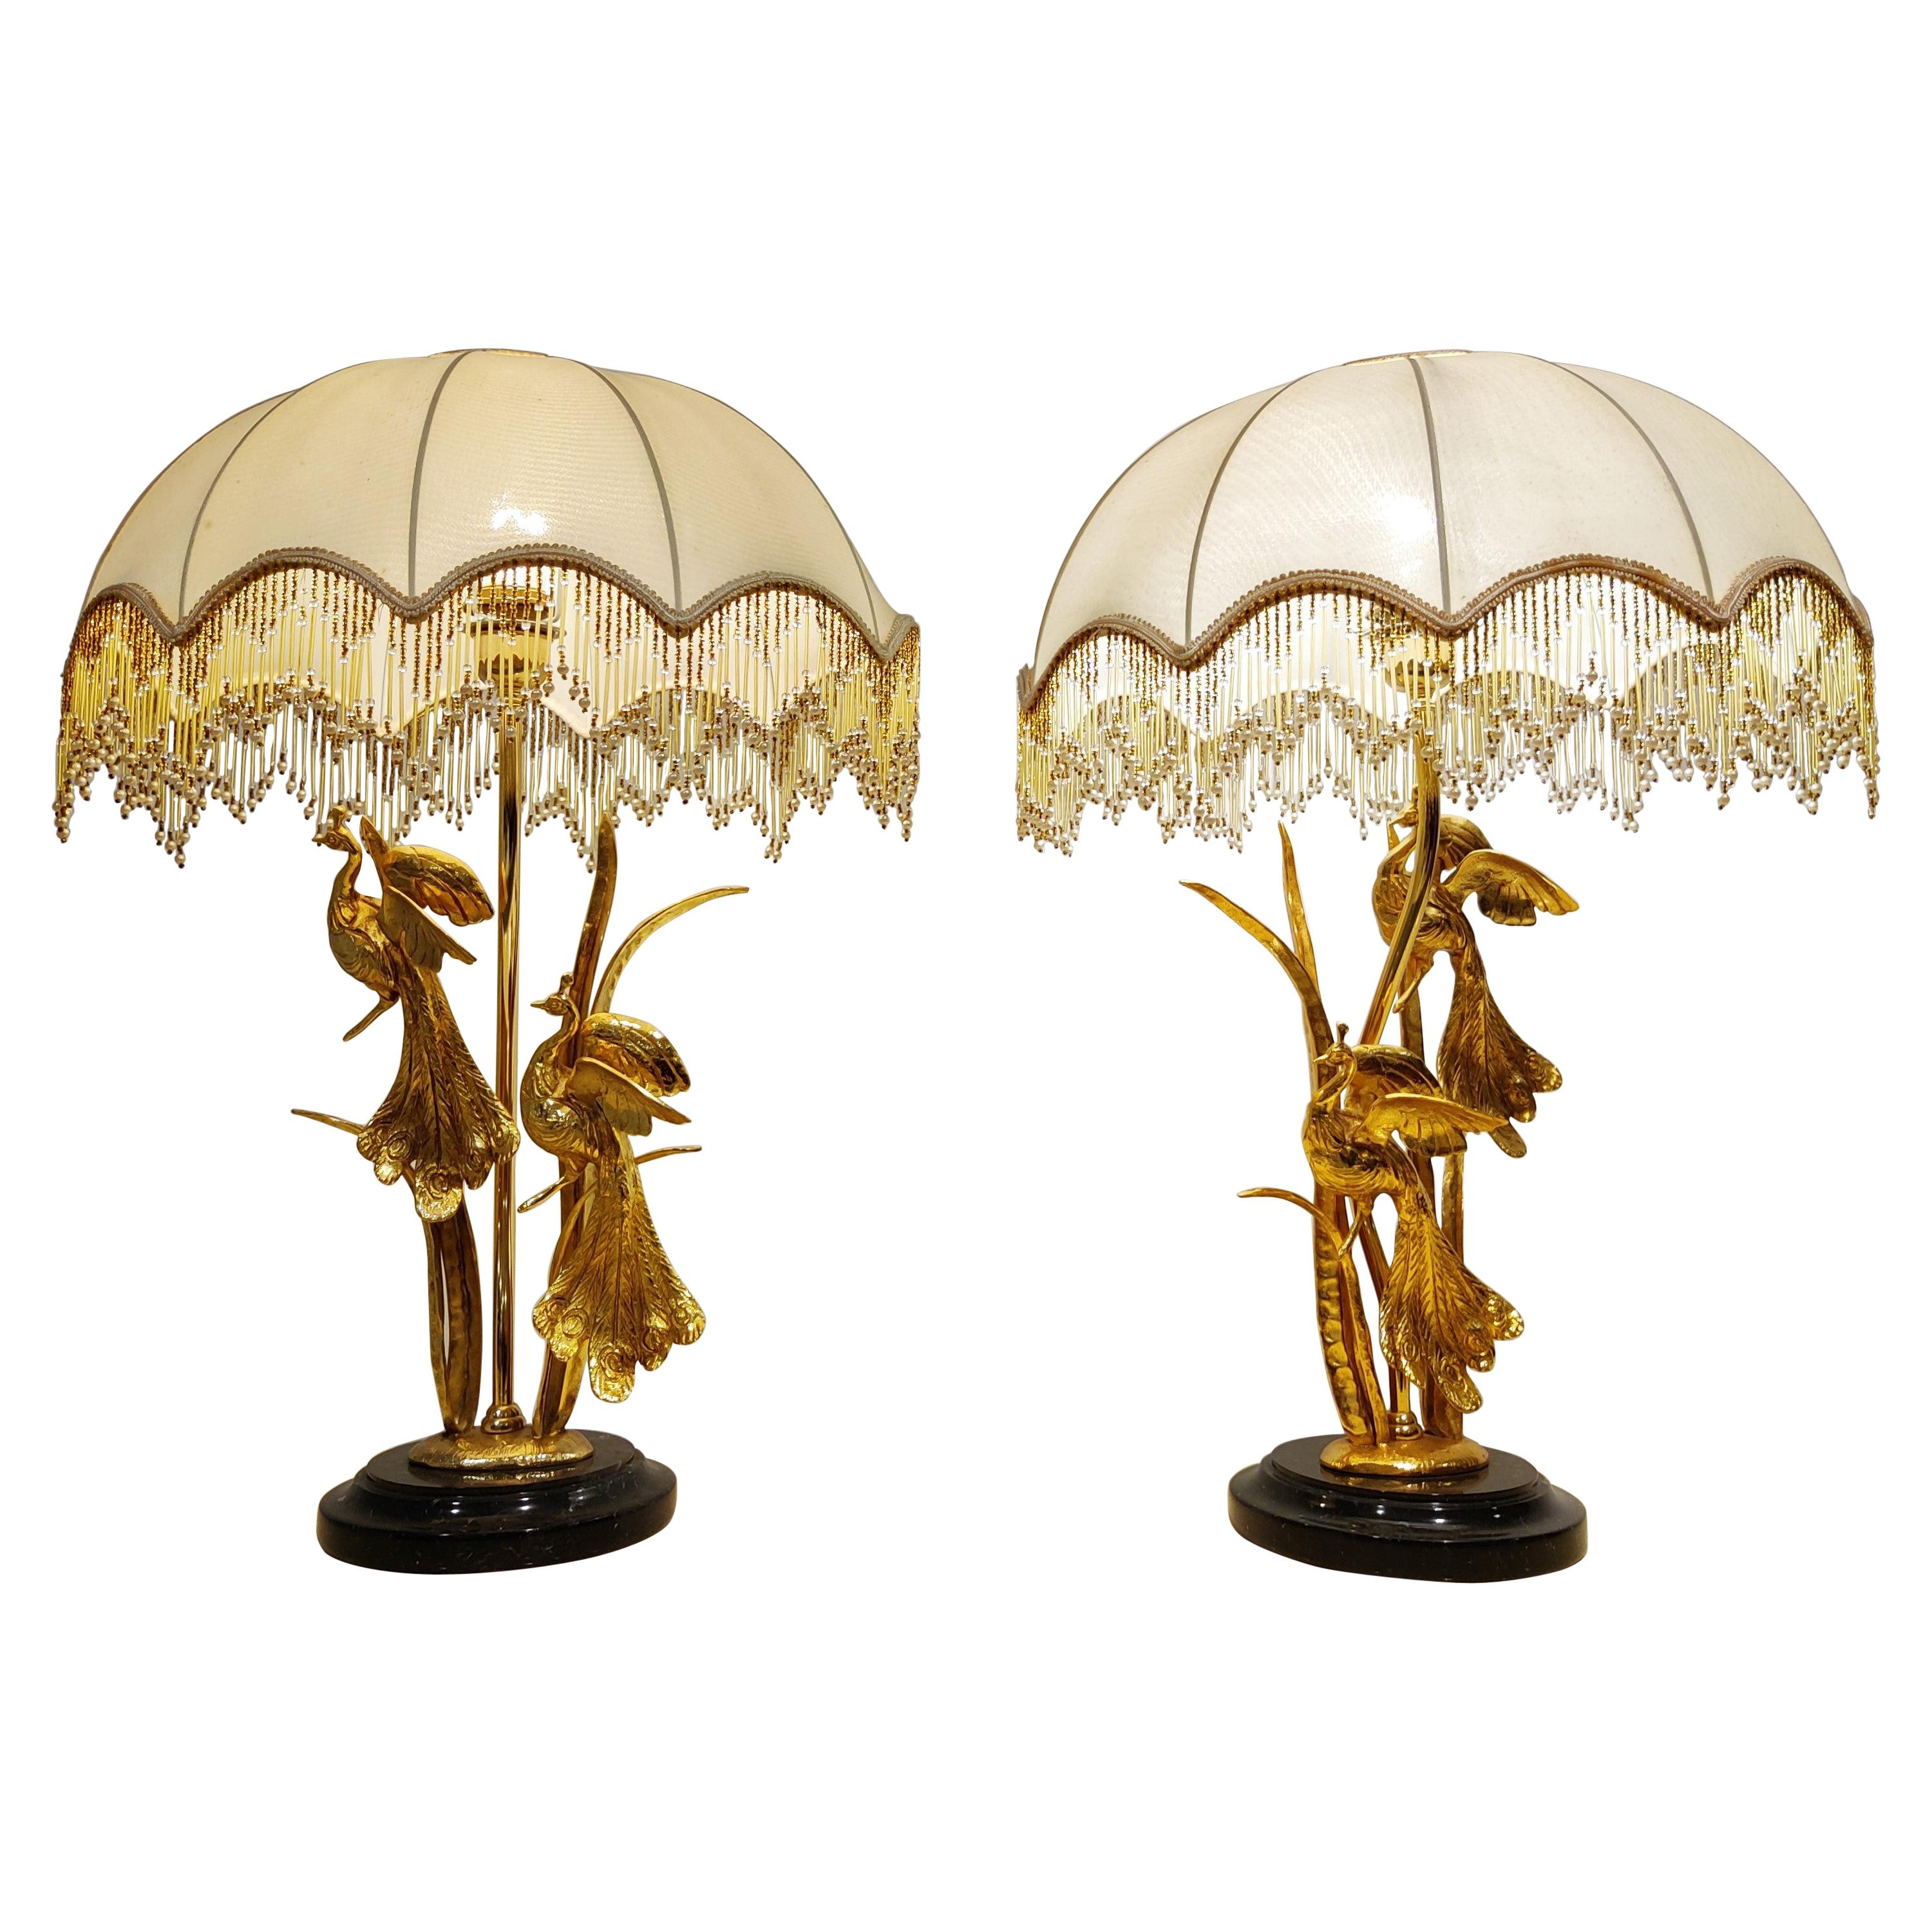 Pair of Vintage Table Lamps by L. Galeotti, 1970s